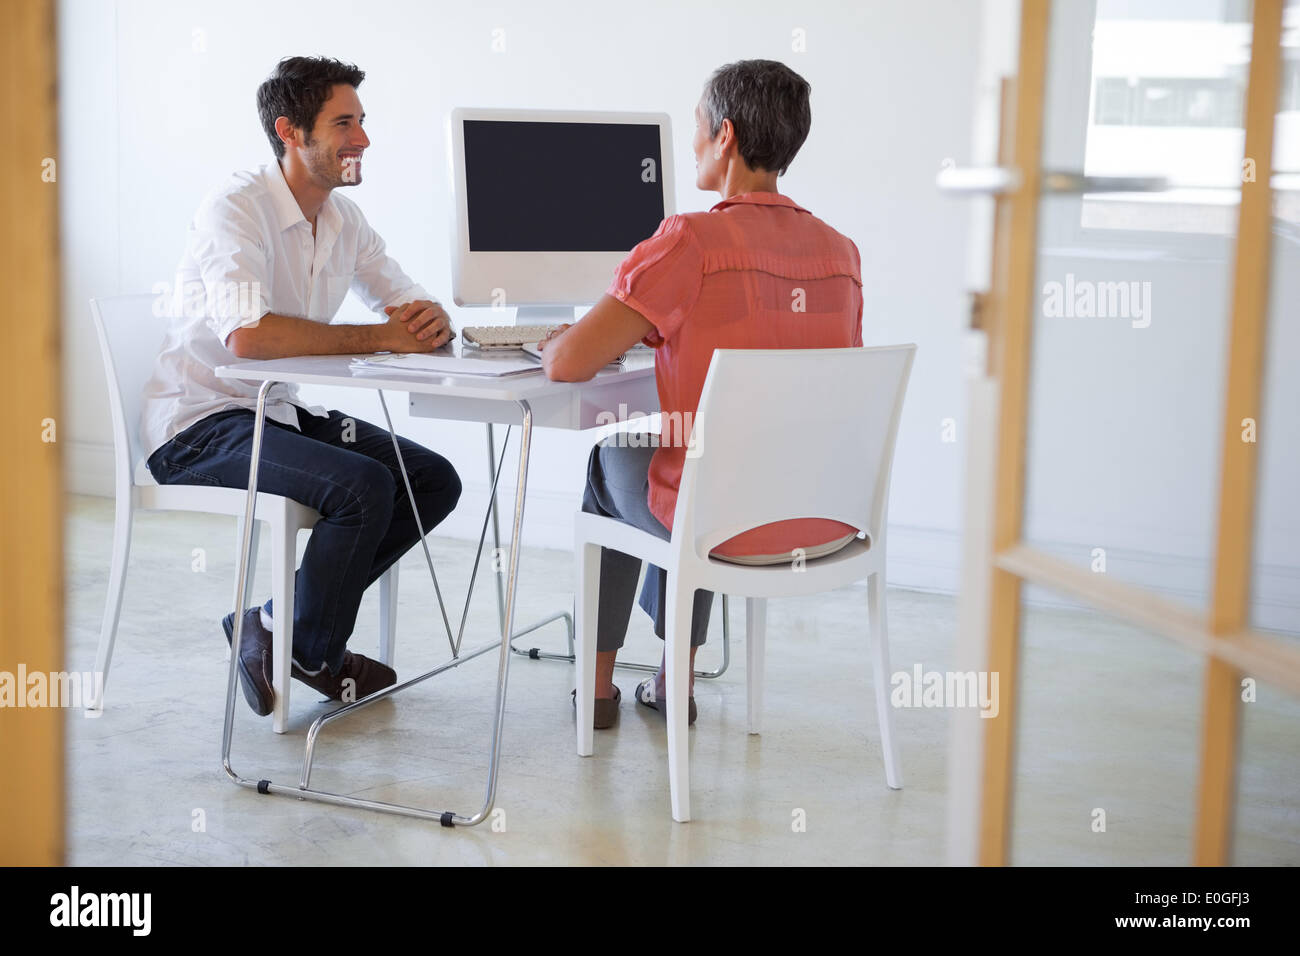 Casual business people talking at desk and smiling - Stock Image